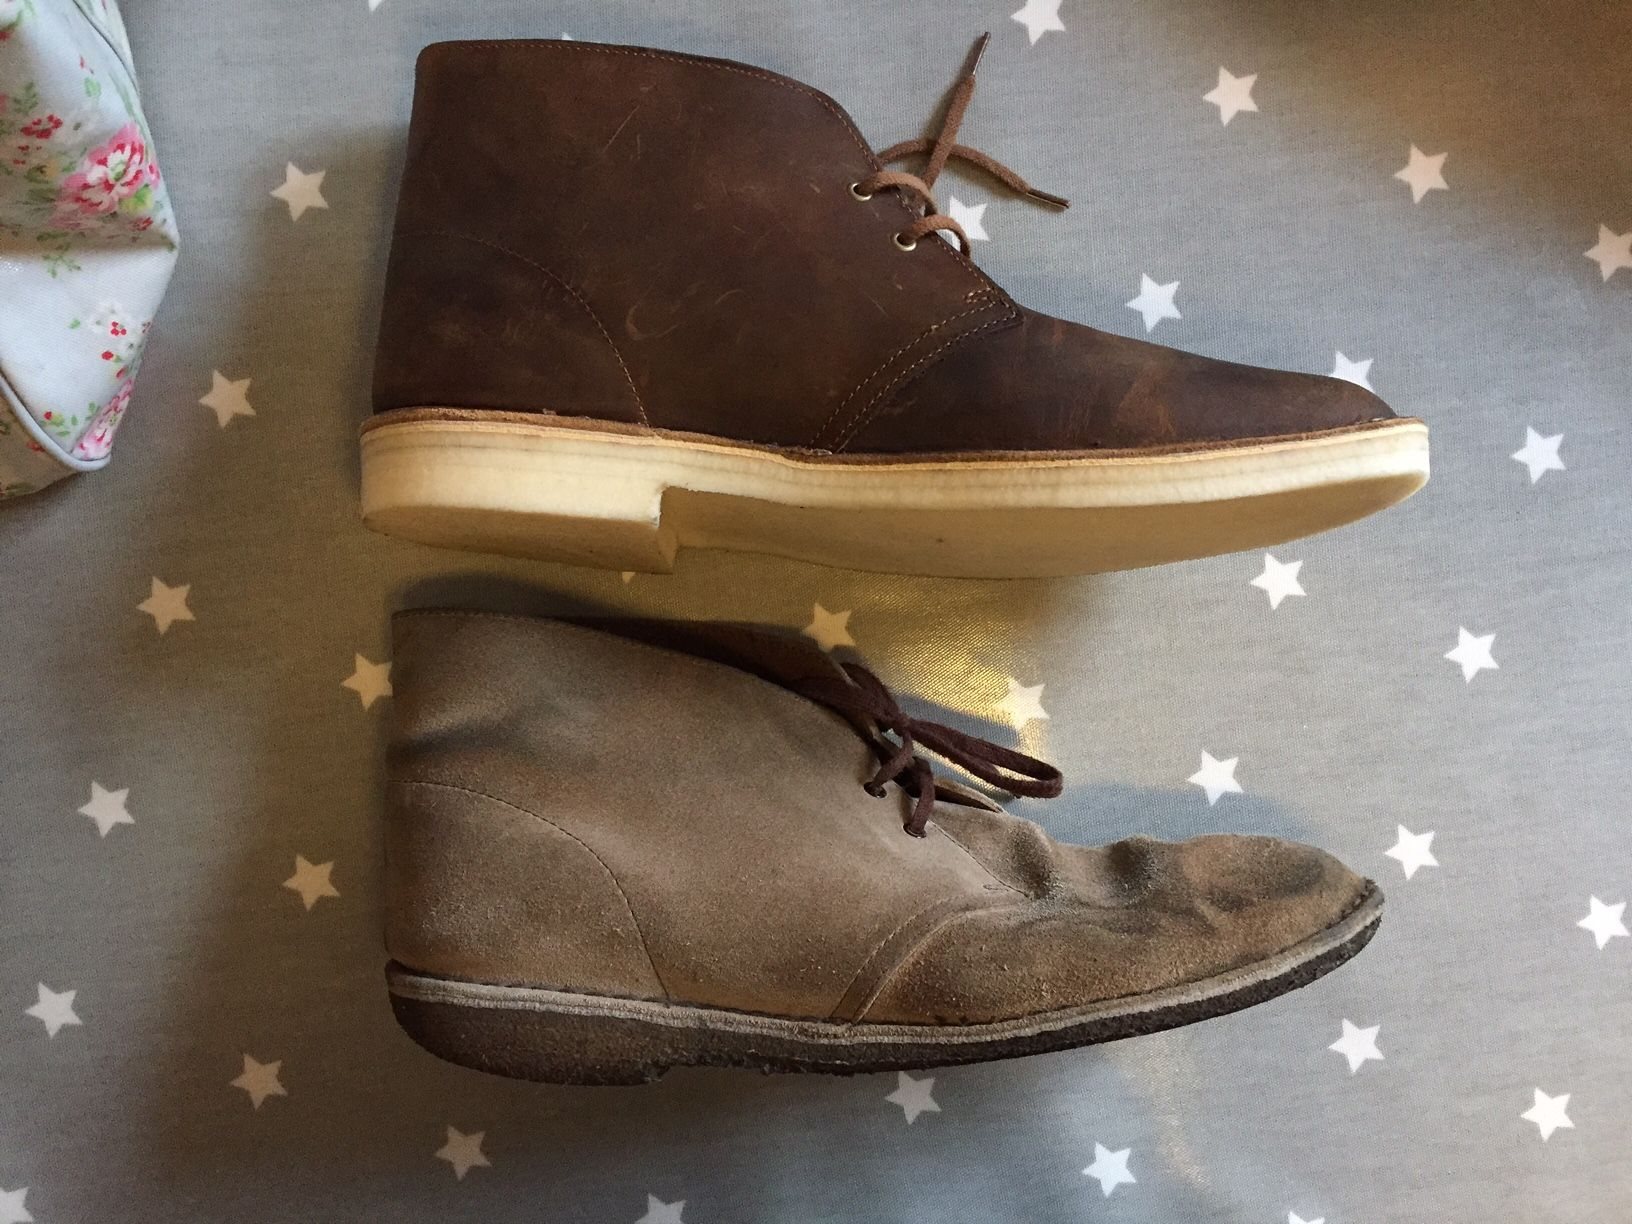 Clarks Desert Boots In Suede After 5 Years Of Almost Daily Wear With New Beeswax Ones For Comparison Styled247 Schoeisel